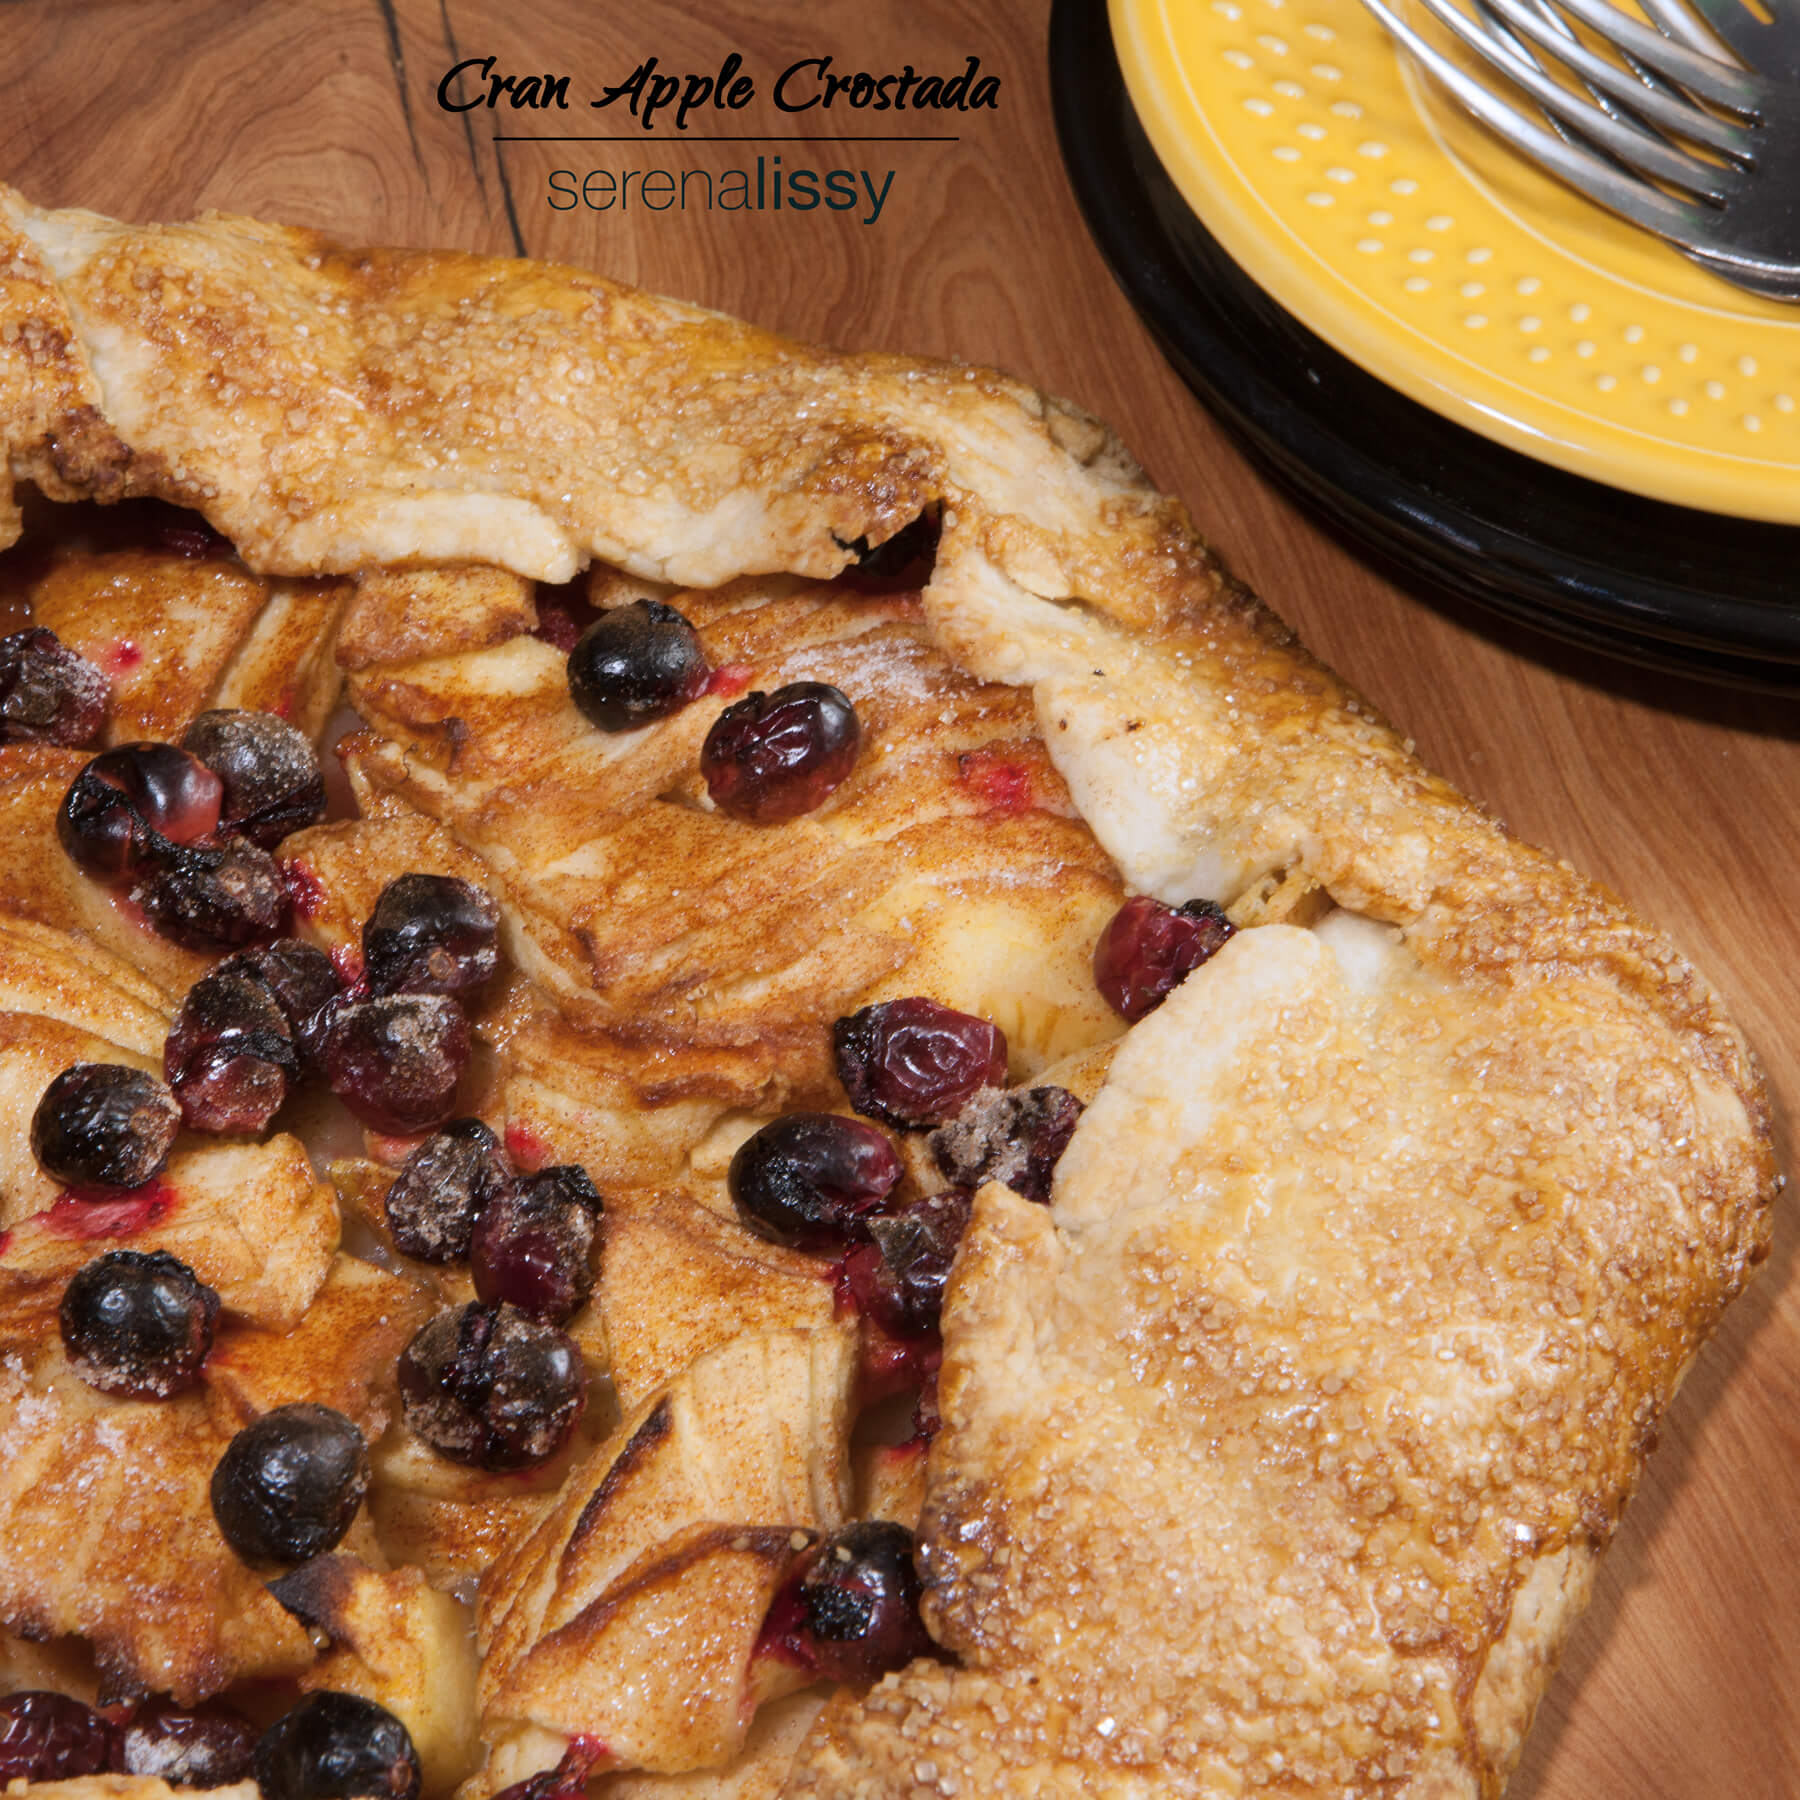 Fresh Cran Apple Crostata